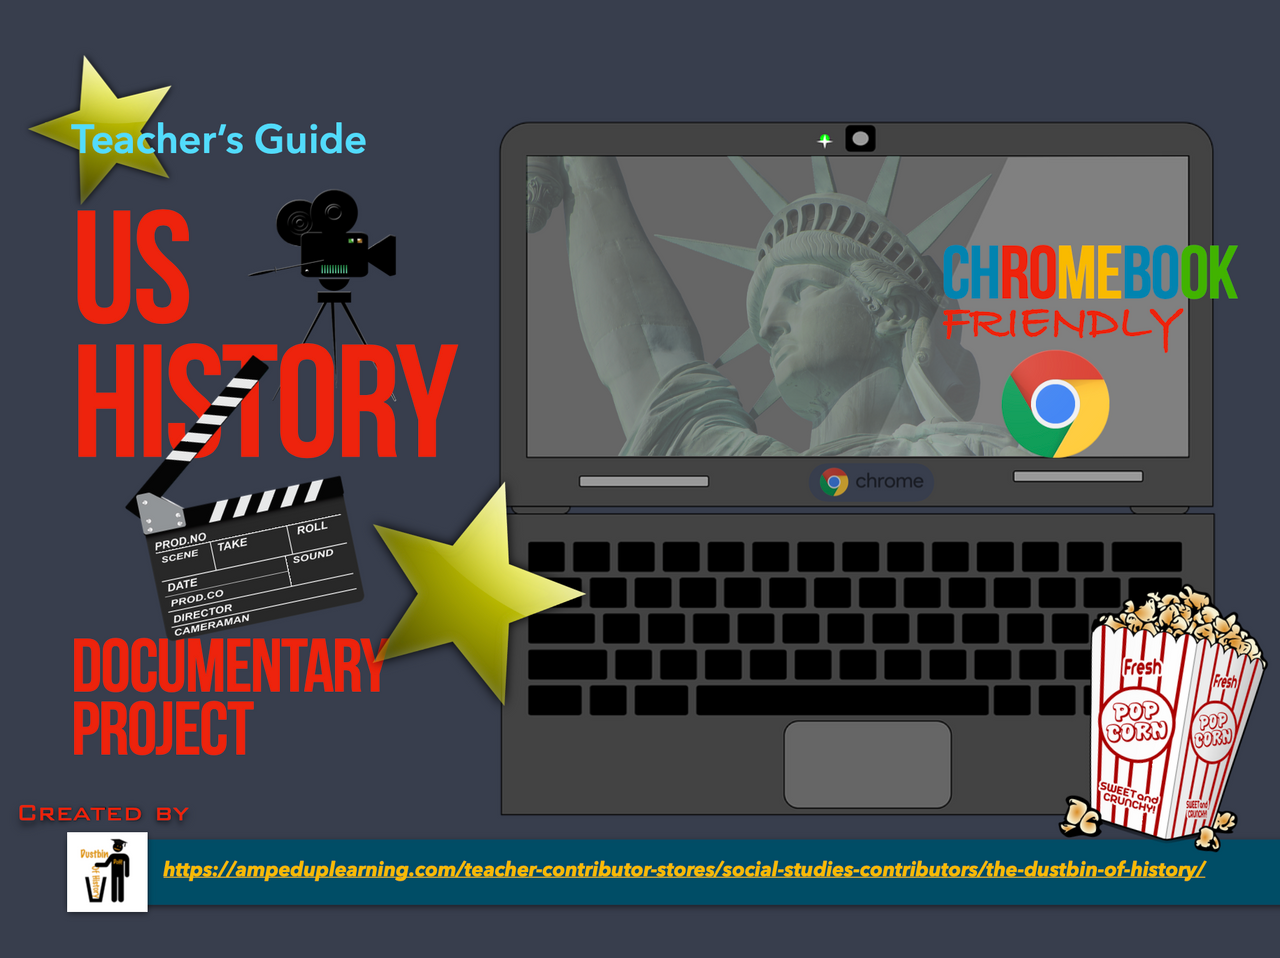 Documentary Project (US History Edition)